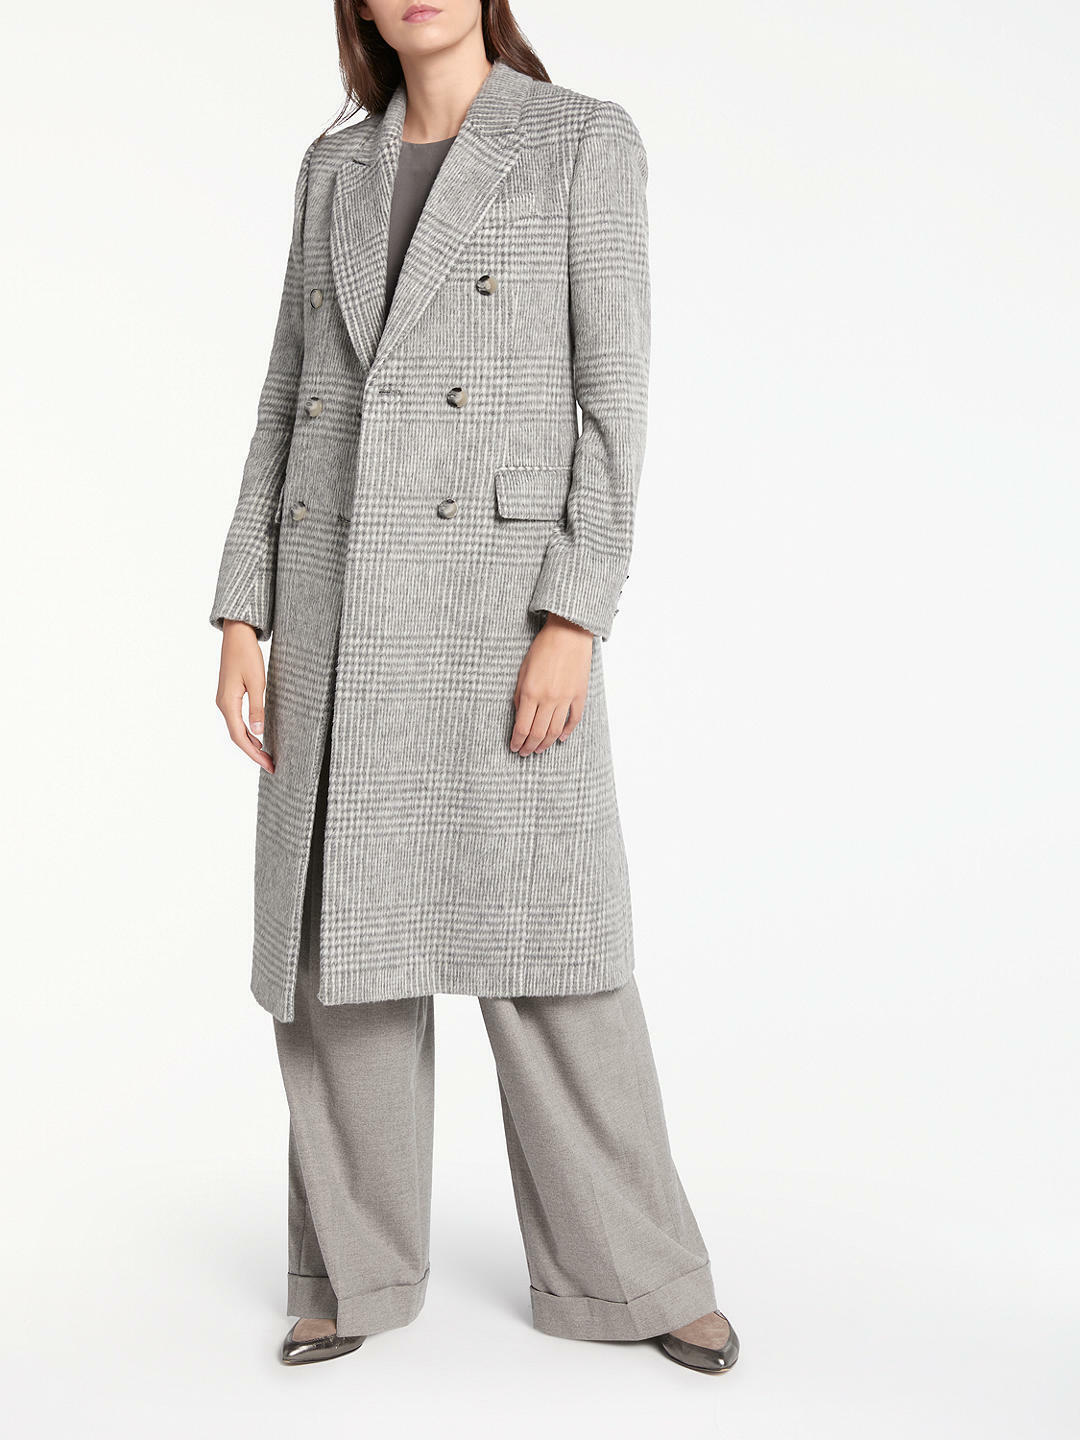 New Modern Rarity Eudon Choi Drawn Double Breasted Coat, Grey, Size 12, RRP